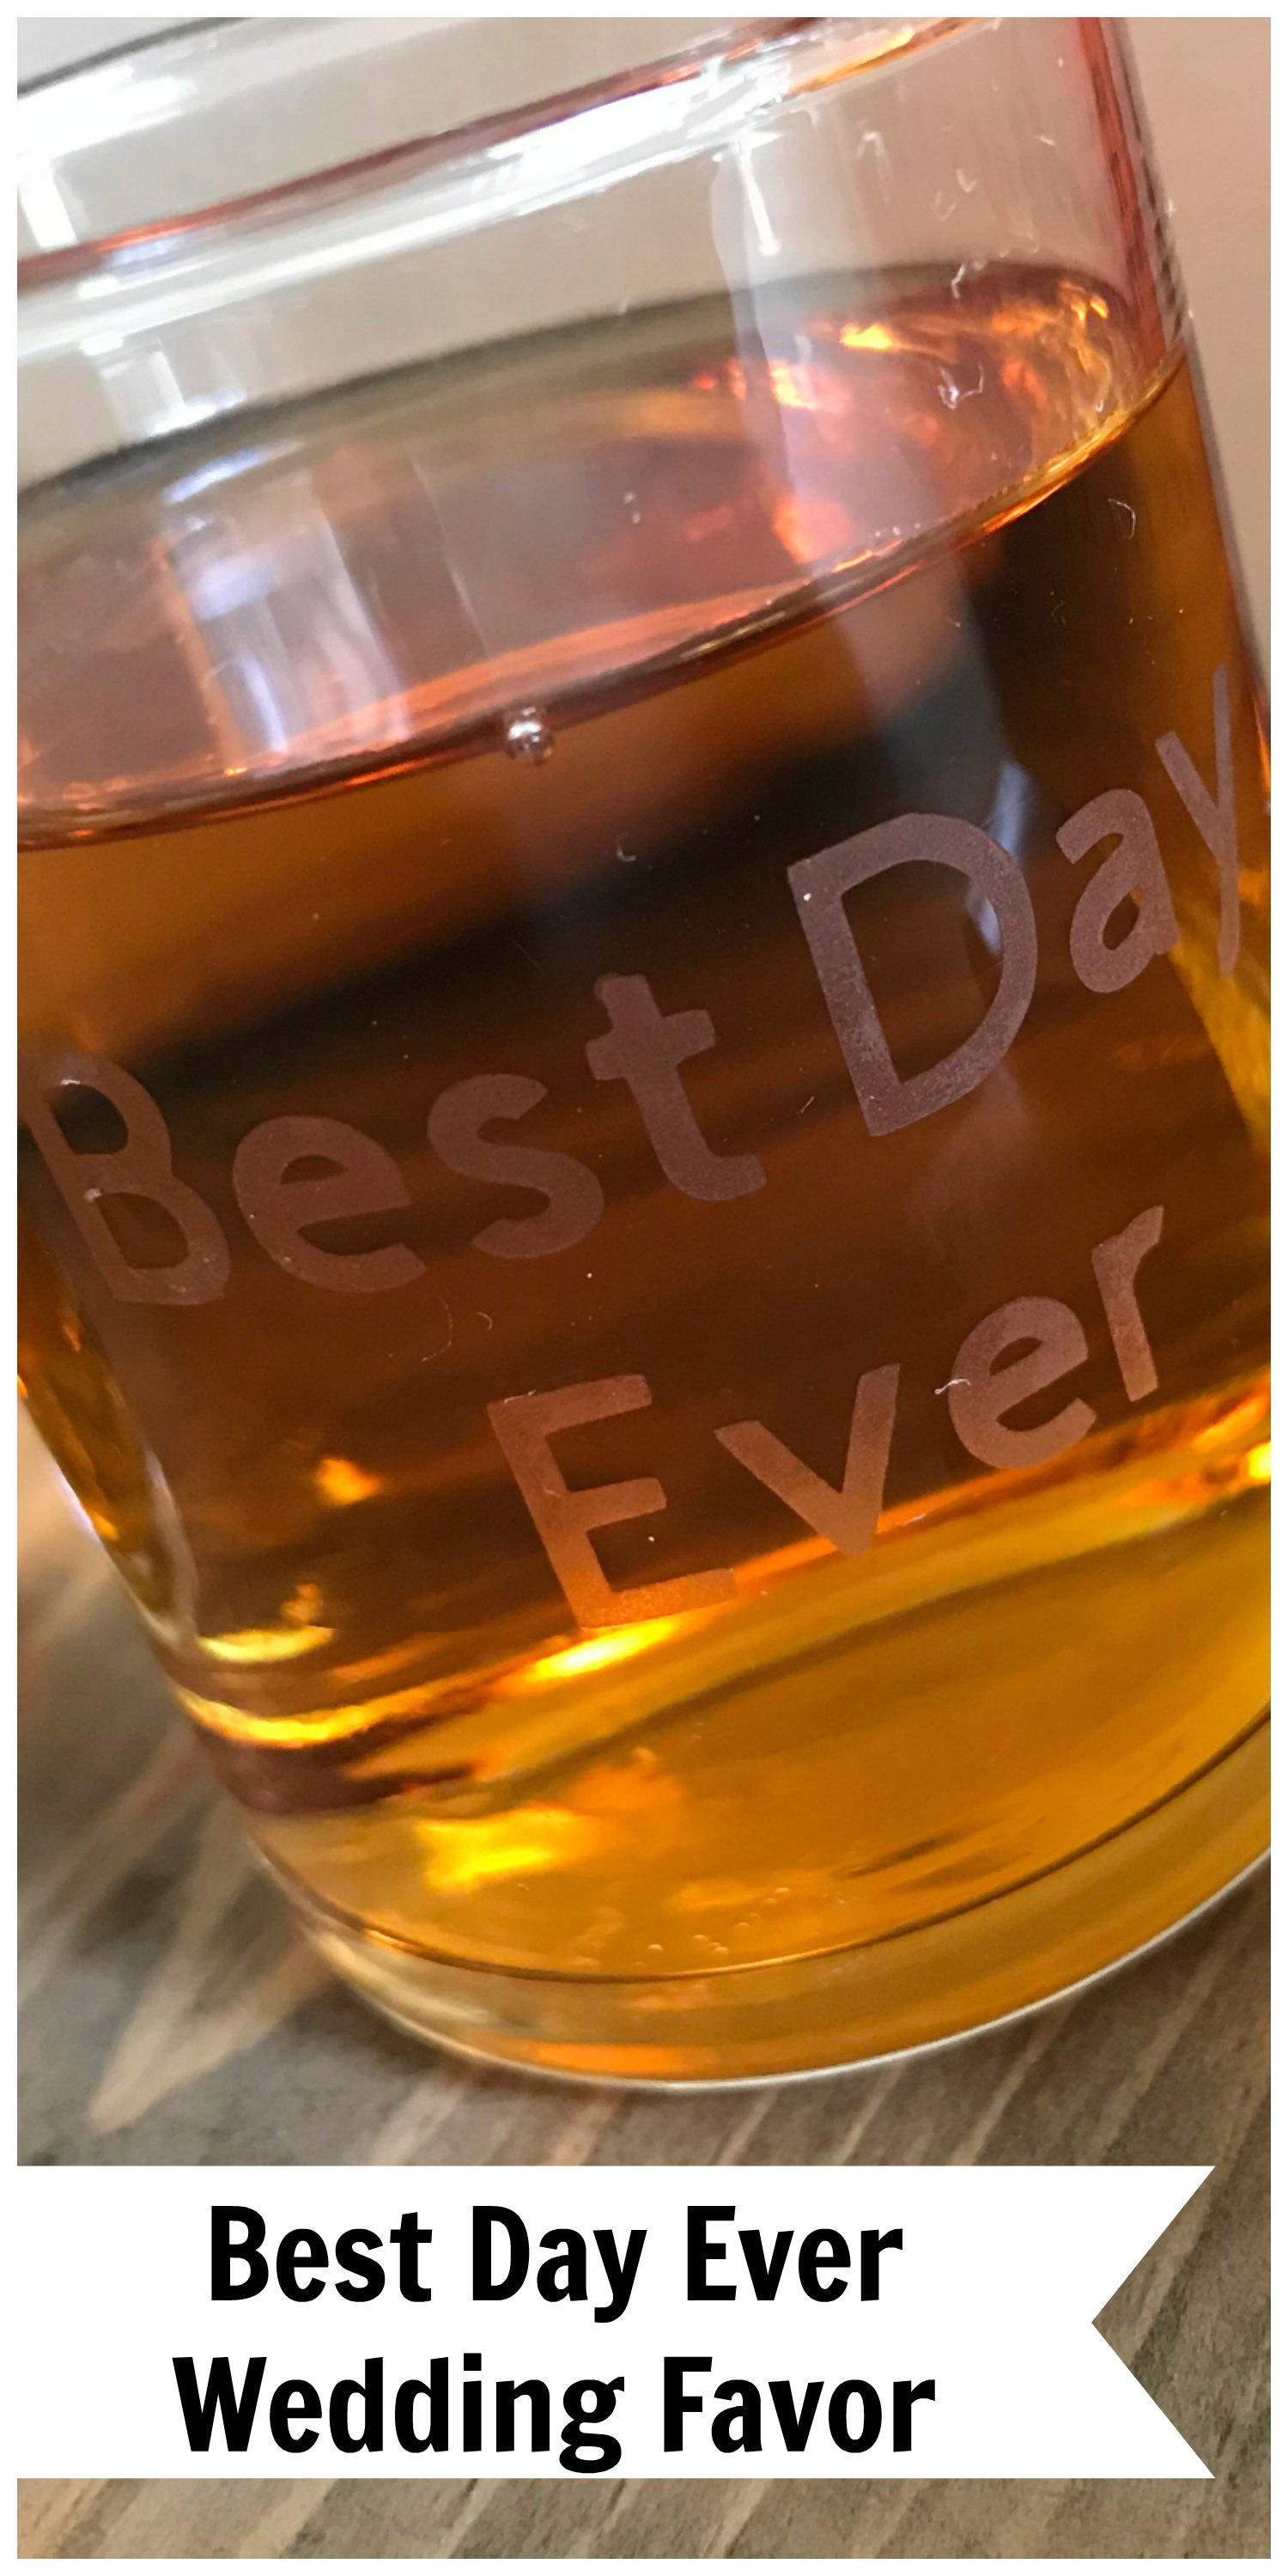 Everyday Party Magazine Best Day Ever Wedding Favor DIY With Cricut #wedding #DIY #CricutMade #BestDayEver